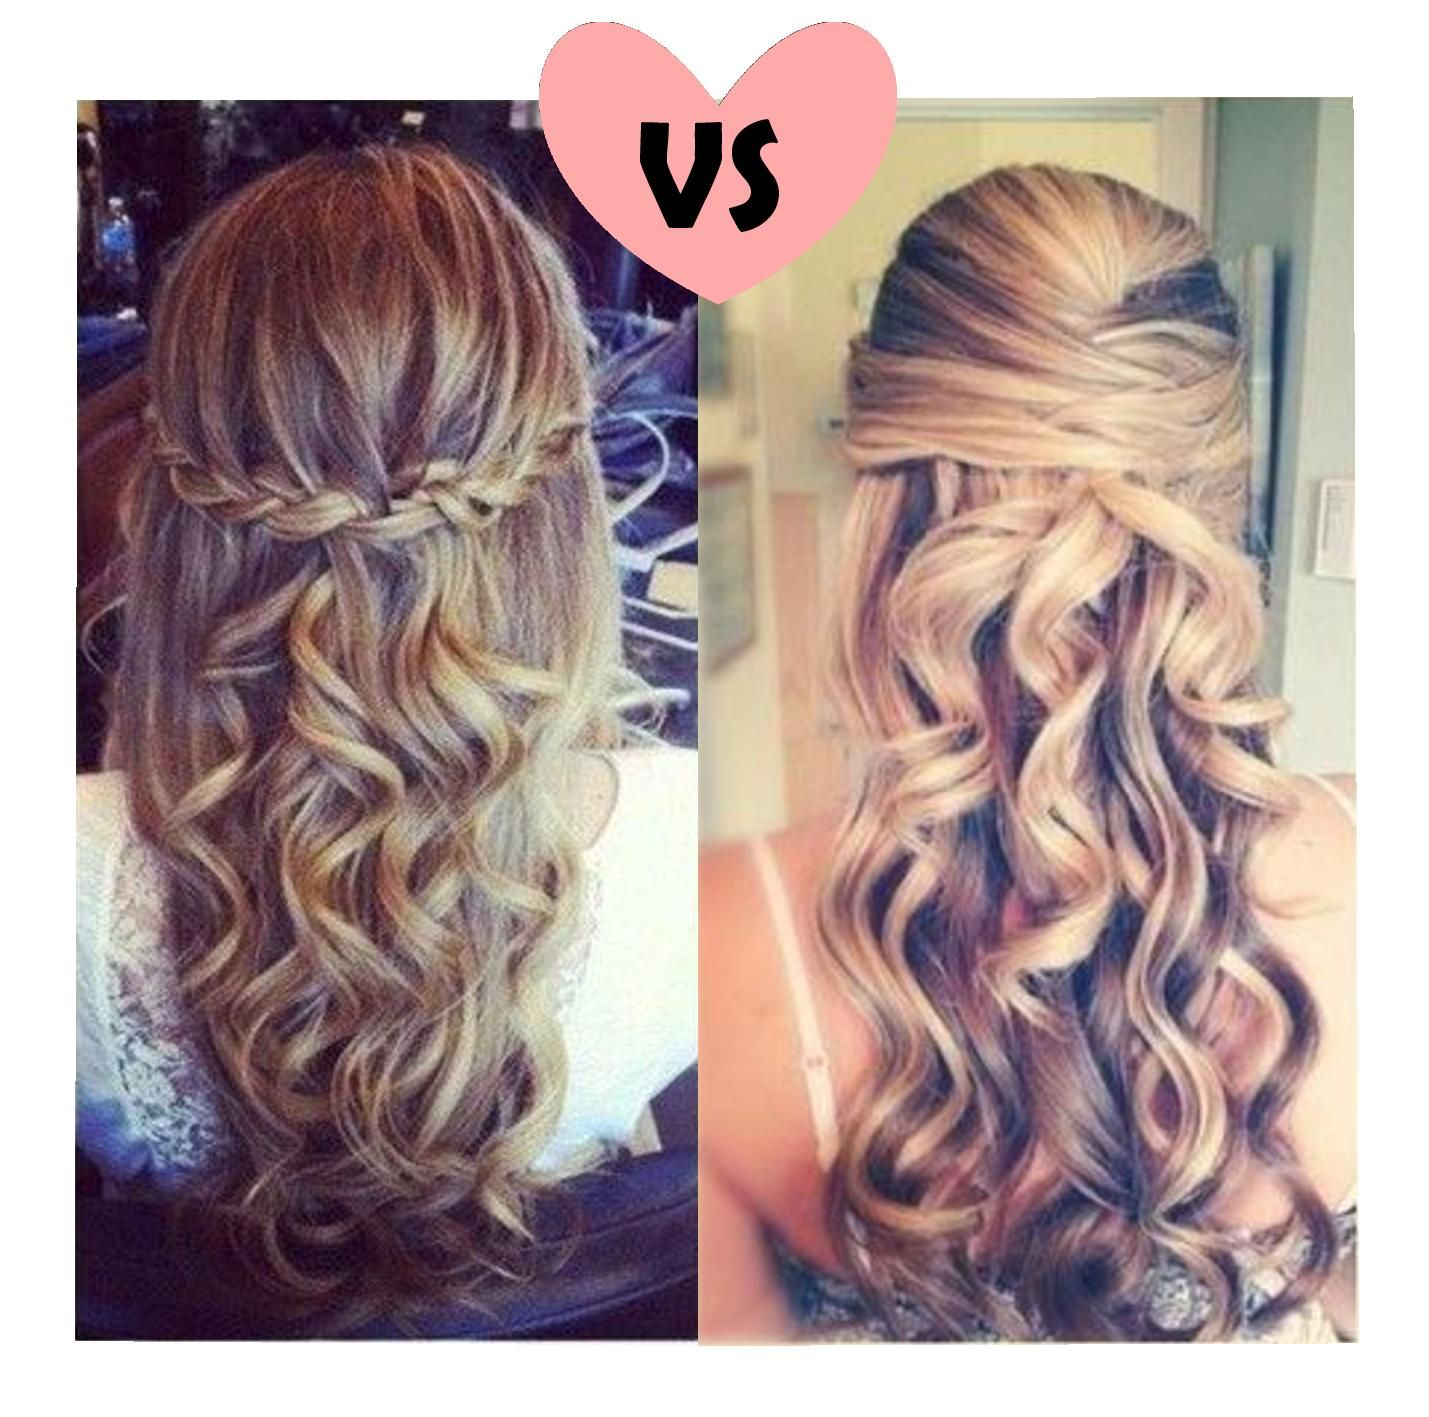 Love The Left Hairstyle Super Easy And Cute Pin And Curl Hairstyle For Prom Hair Styles Simple Prom Hair Prom Hair Down